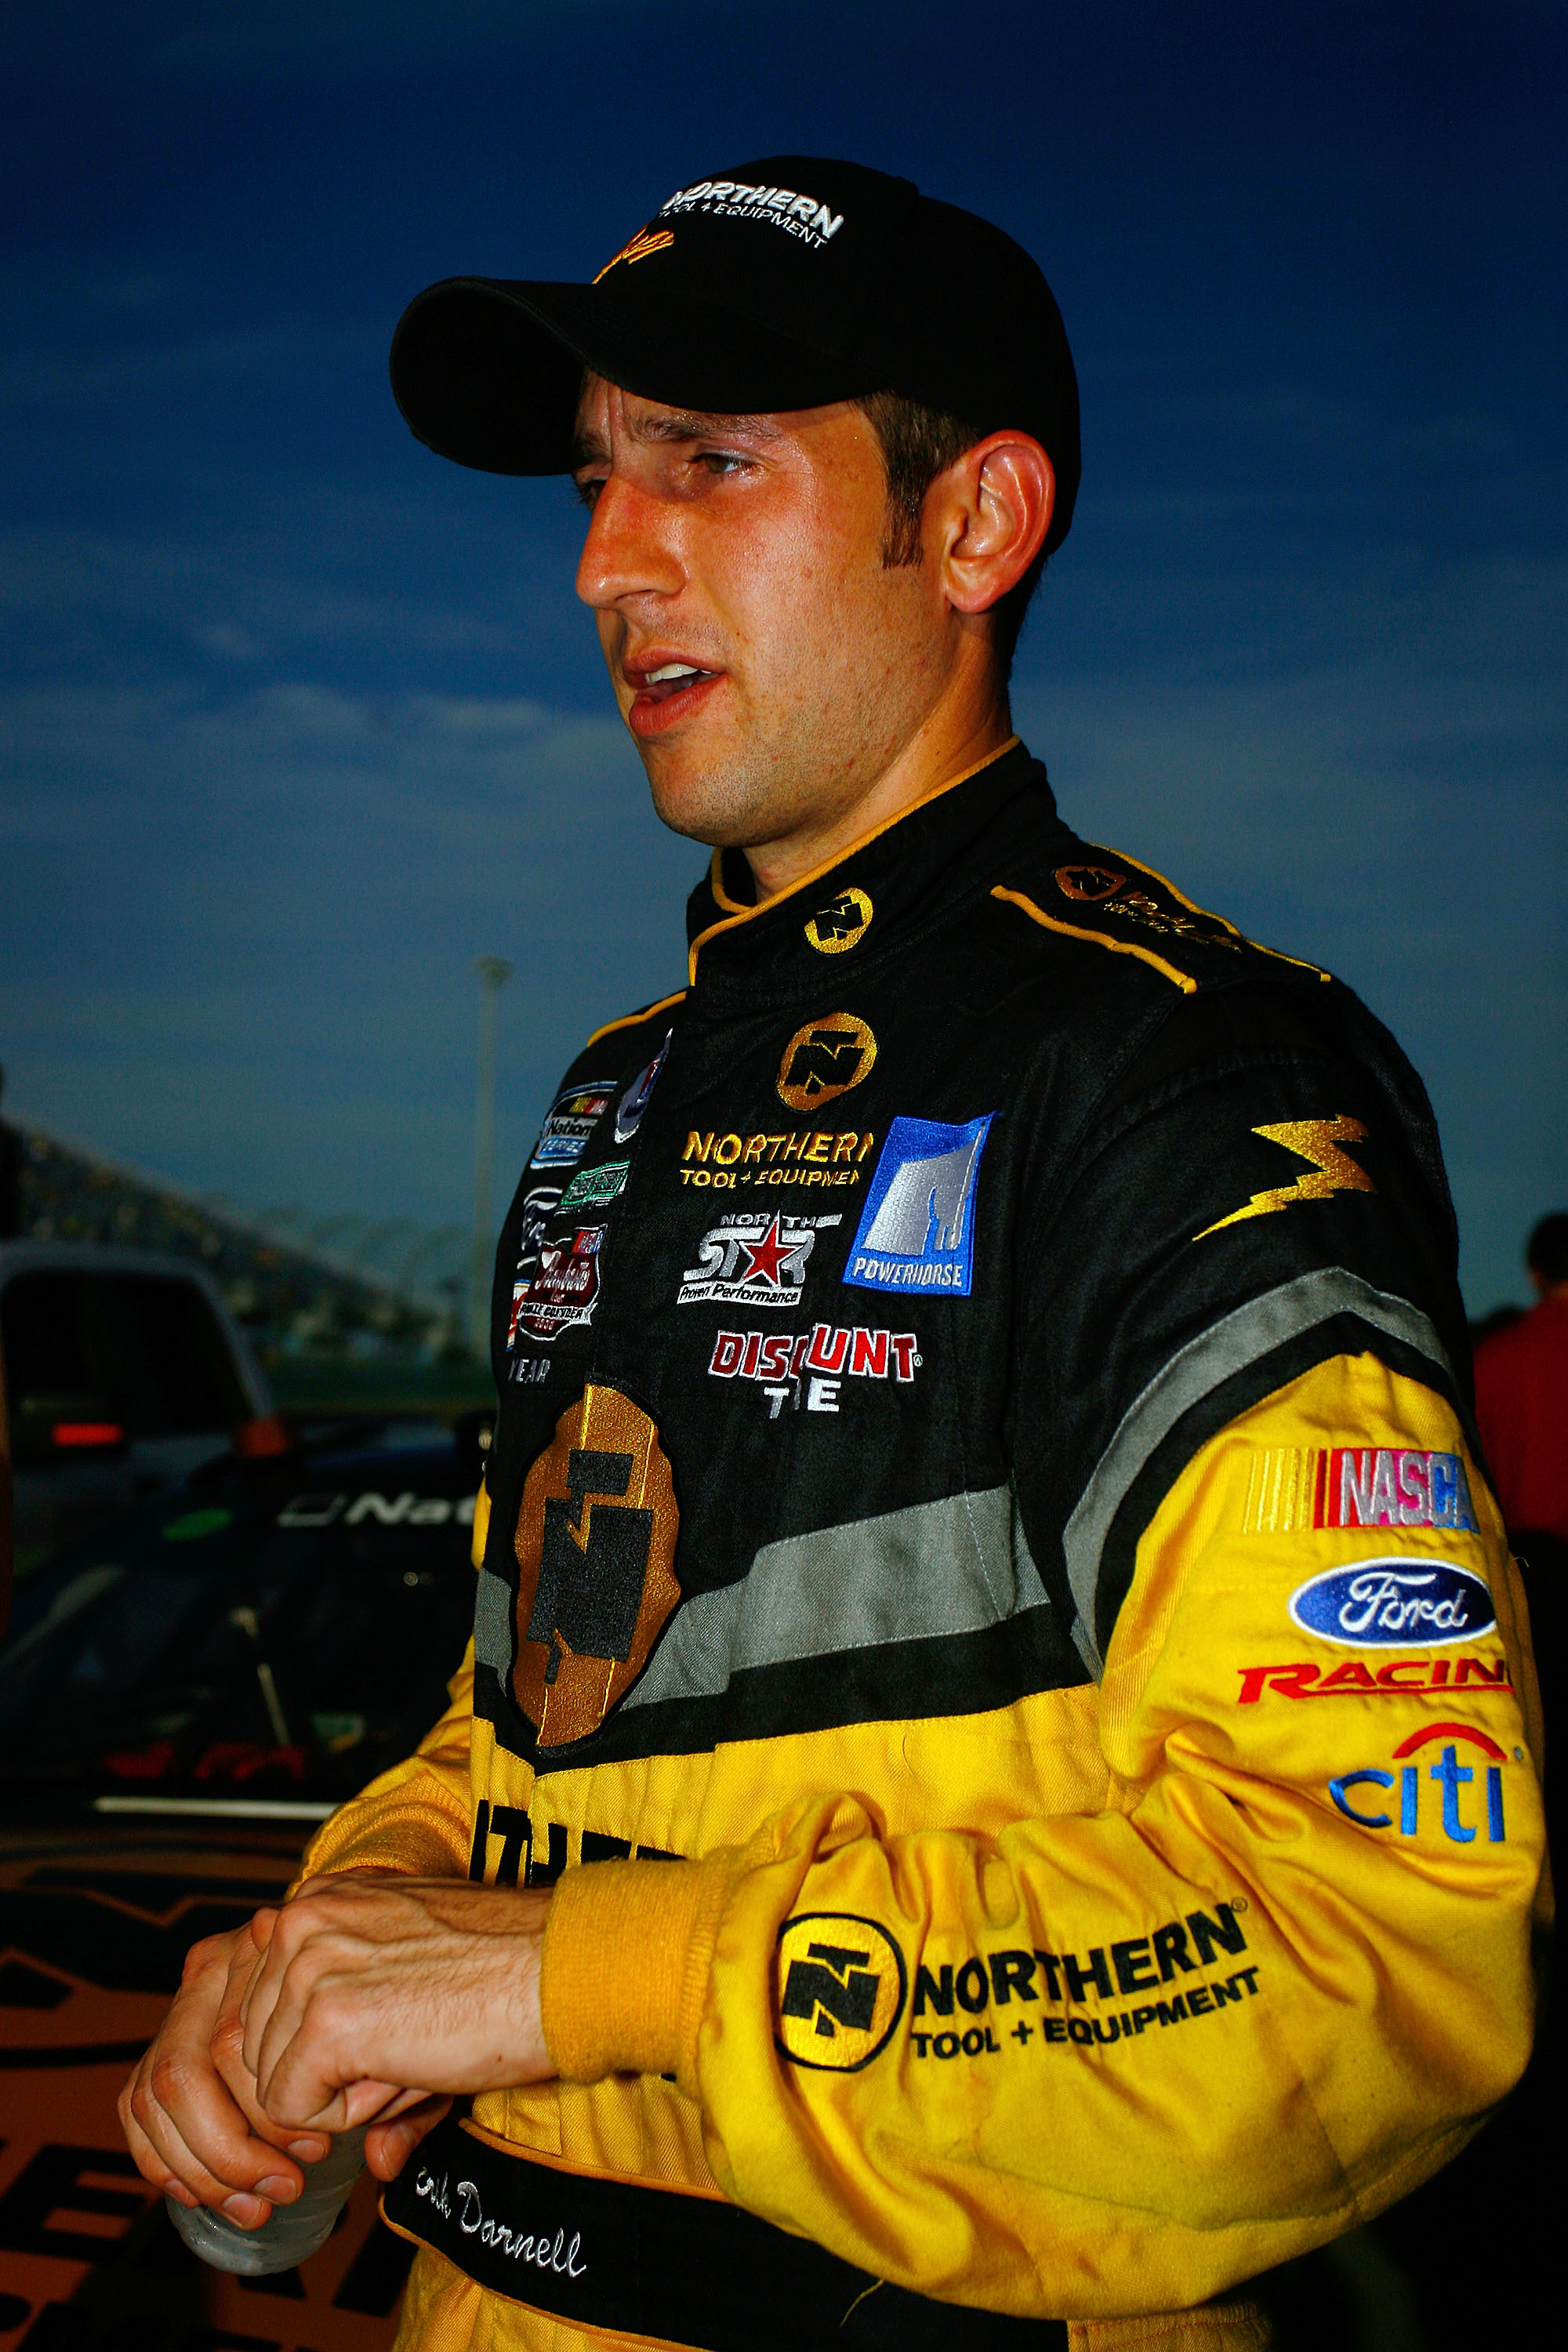 HOMESTEAD, FL - NOVEMBER 21:  Erik Darnell, driver of the #6  Northern Tool + Equipment Ford, stands on the grid prior to the start of the NASCAR Nationwide Series Ford 300 at Homestead-Miami Speedway on November 21, 2009 in Homestead, Florida.  (Photo by